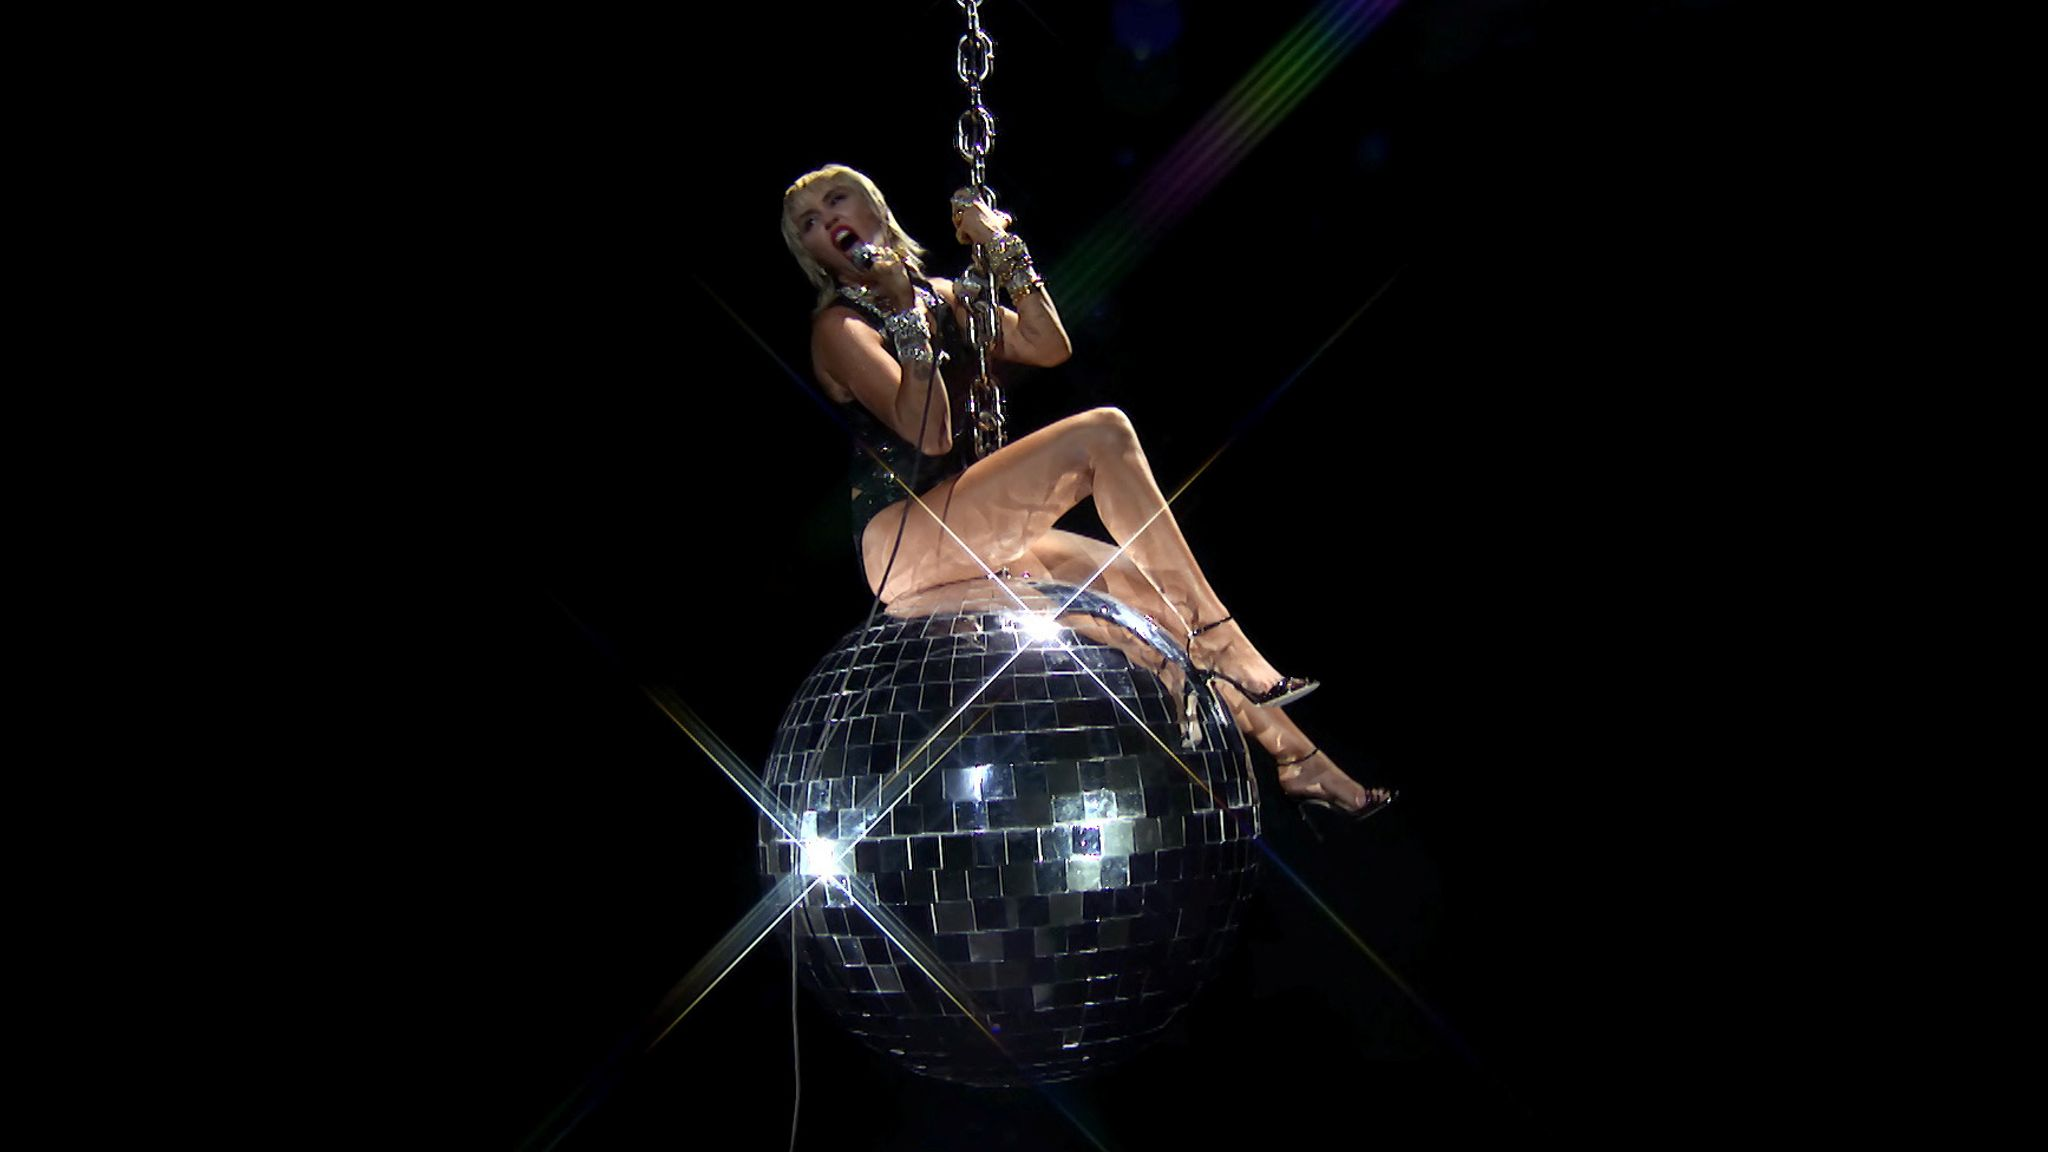 Miley Cyrus performs during the 2020 MTV VMAs in this screen grab image made available on August 30, 2020.